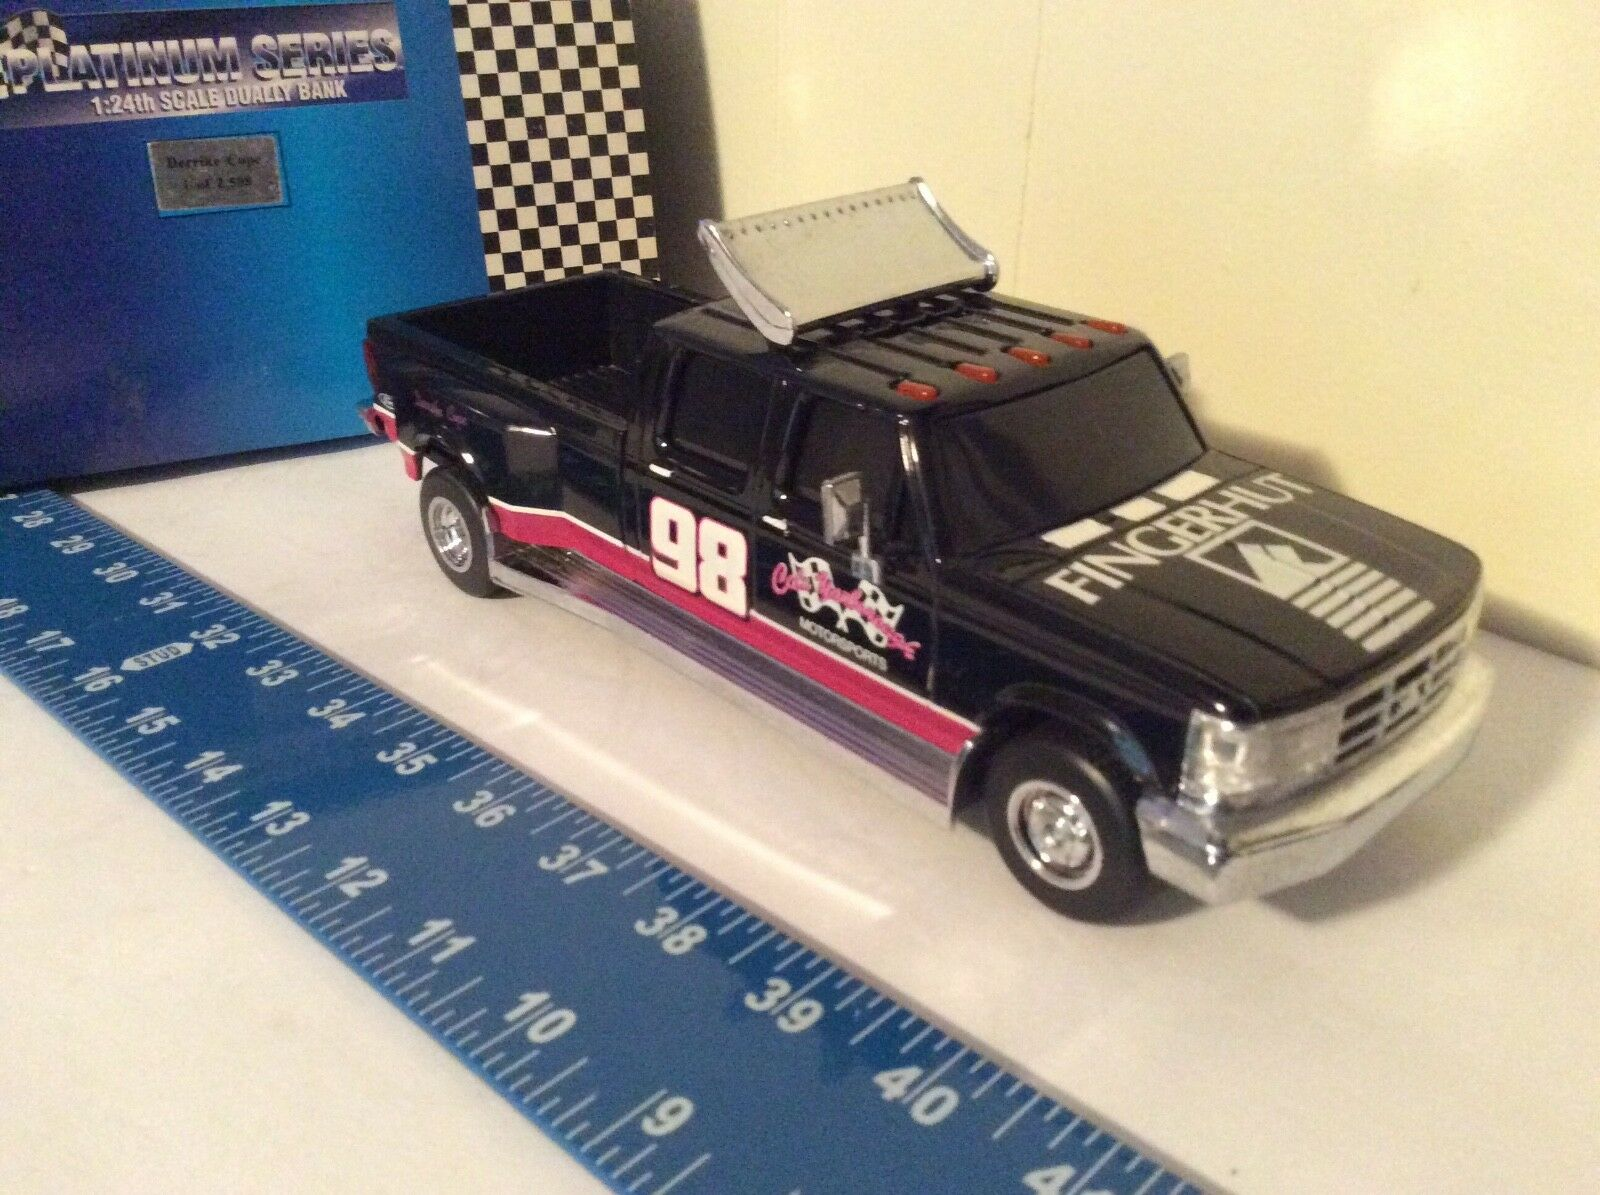 Derrière Cope 98 Action Calibro Yarbrough Racing Ford Duplice Camion 1/24 F350